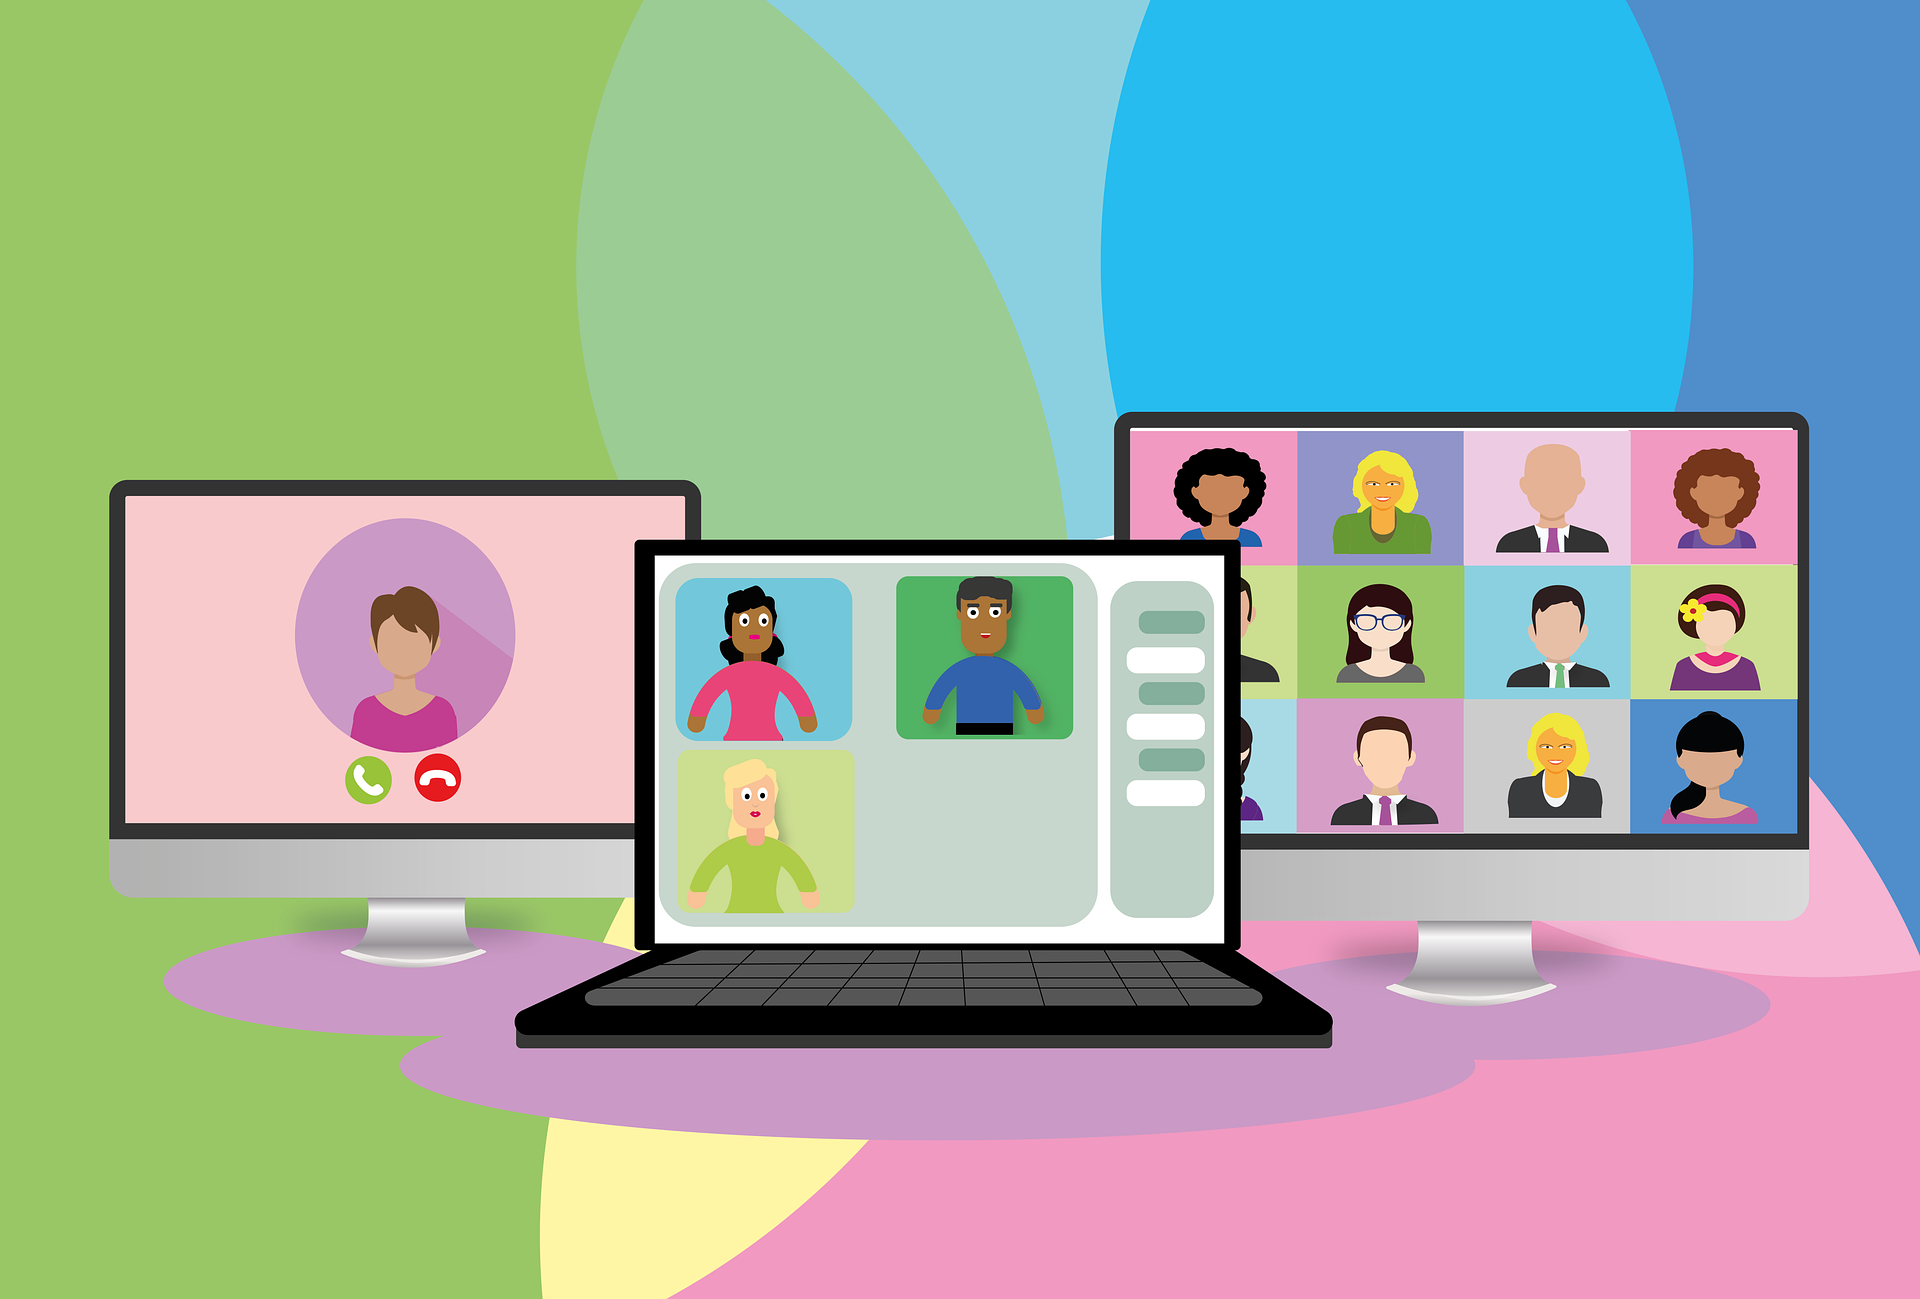 Graphics about people on Zoom meetings.